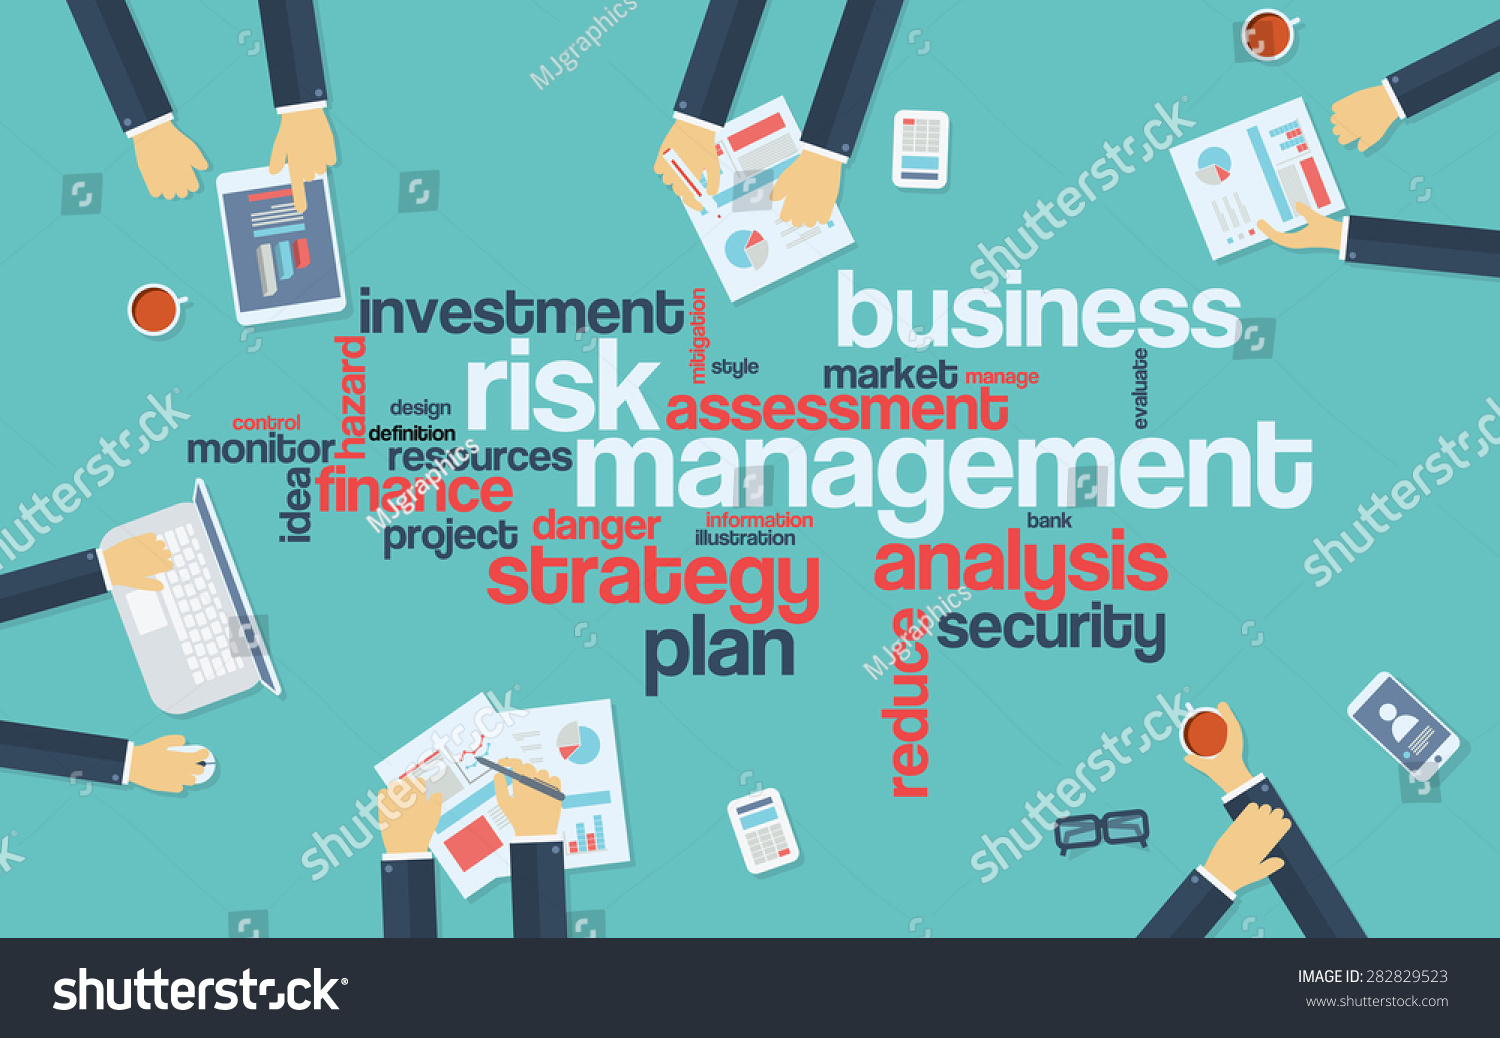 Poster design keywords - Risk Management Infographics Poster With Businessmen Working Around The Word Cloud Analysis And Planning Keywords